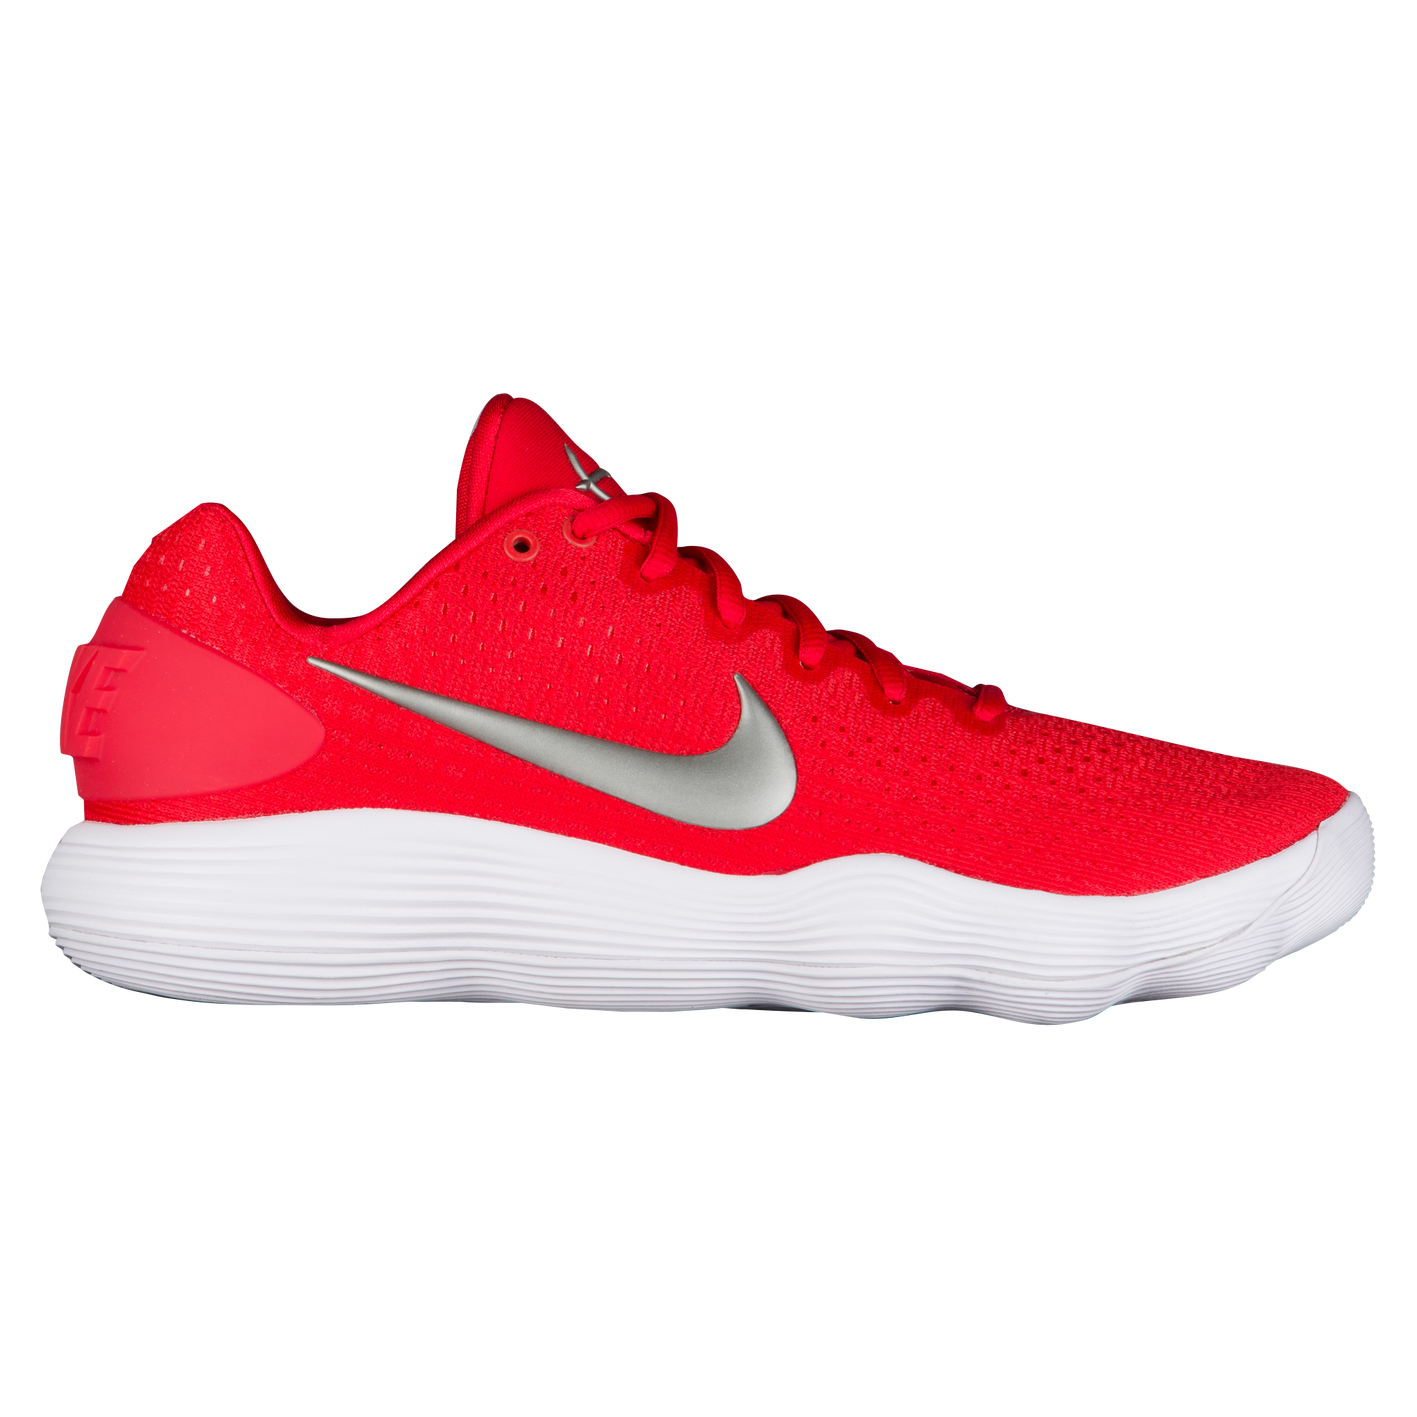 35b8441577a4 Nike React Hyperdunk 2017 Low - Men s - Basketball - Shoes ...